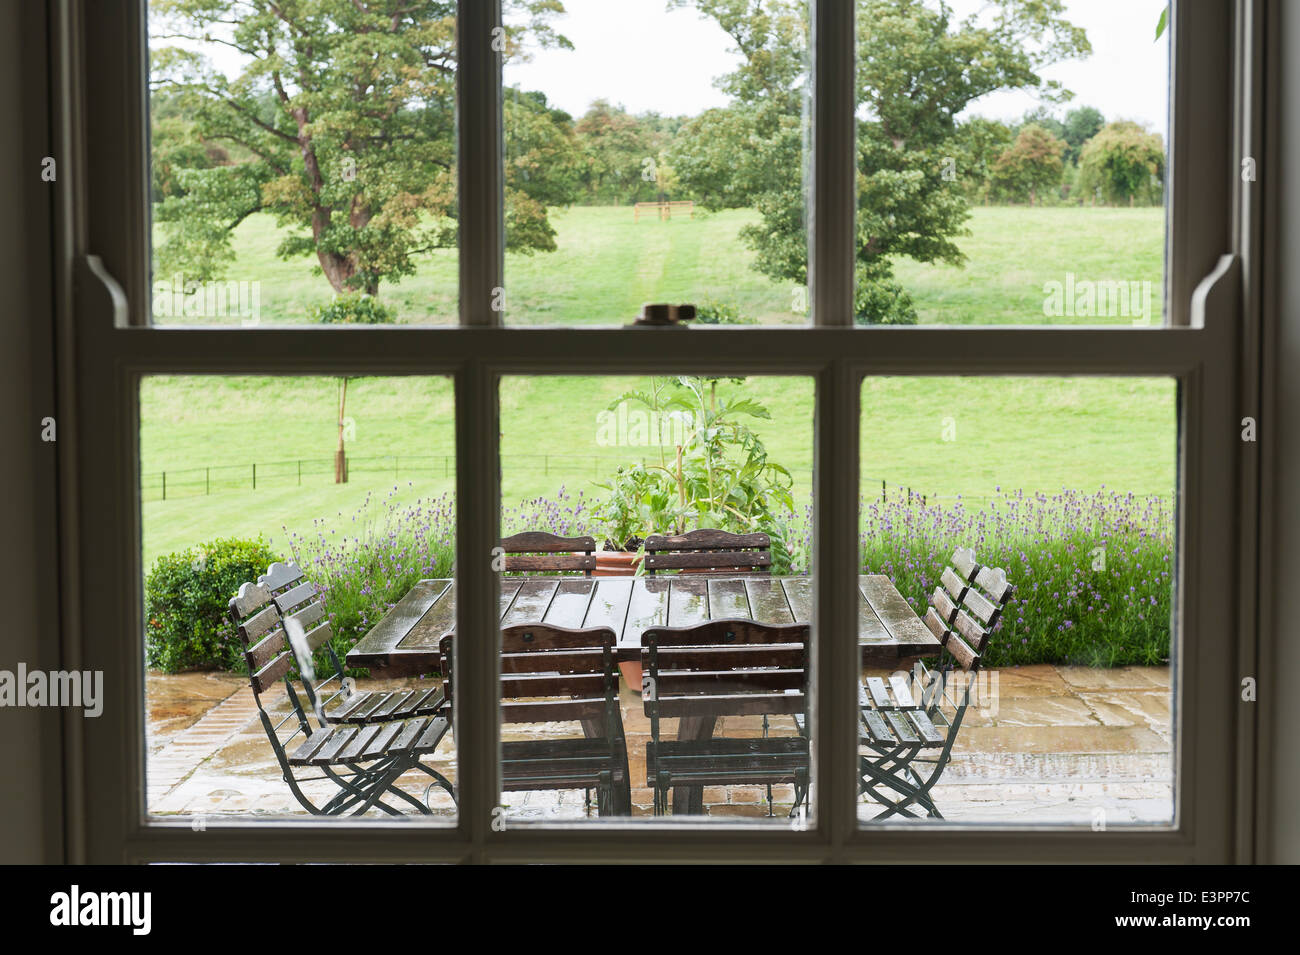 View through paned window out to wet garden terrace with garden furniture - Stock Image